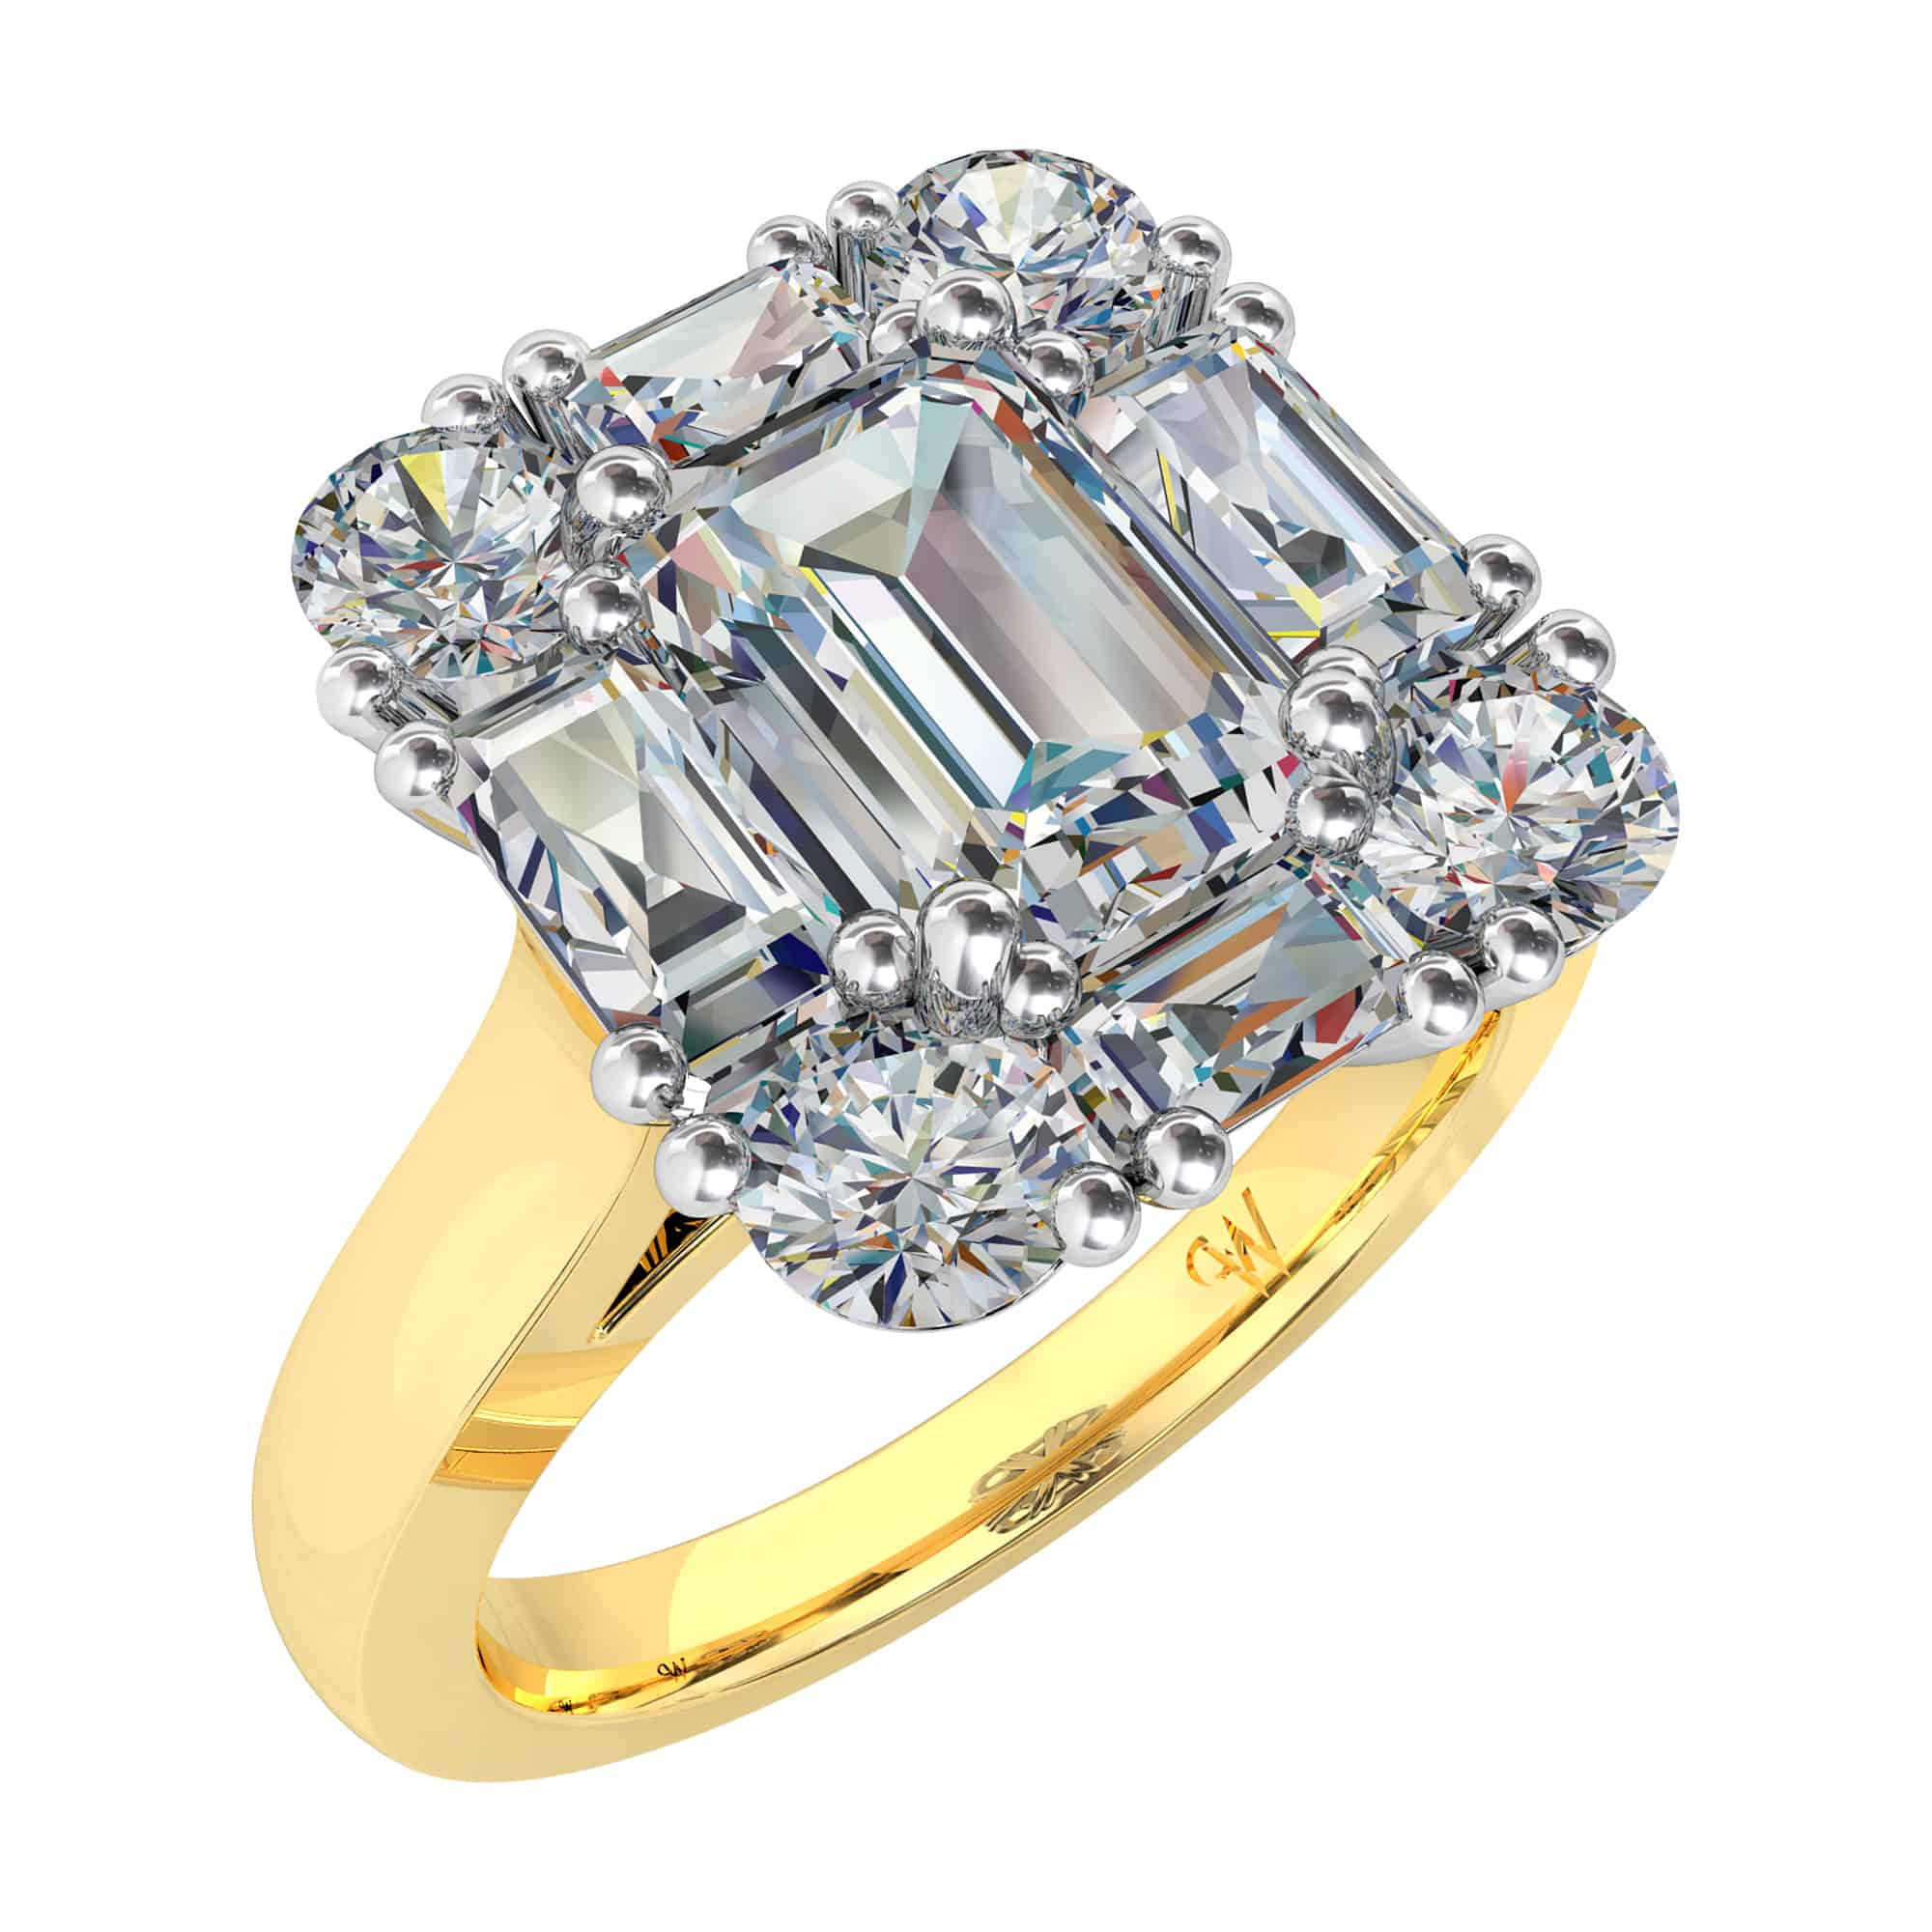 art carat ring diamond asscher tapering calibre cut antiques elegant with asher sapphire detail shoulders a stunning and